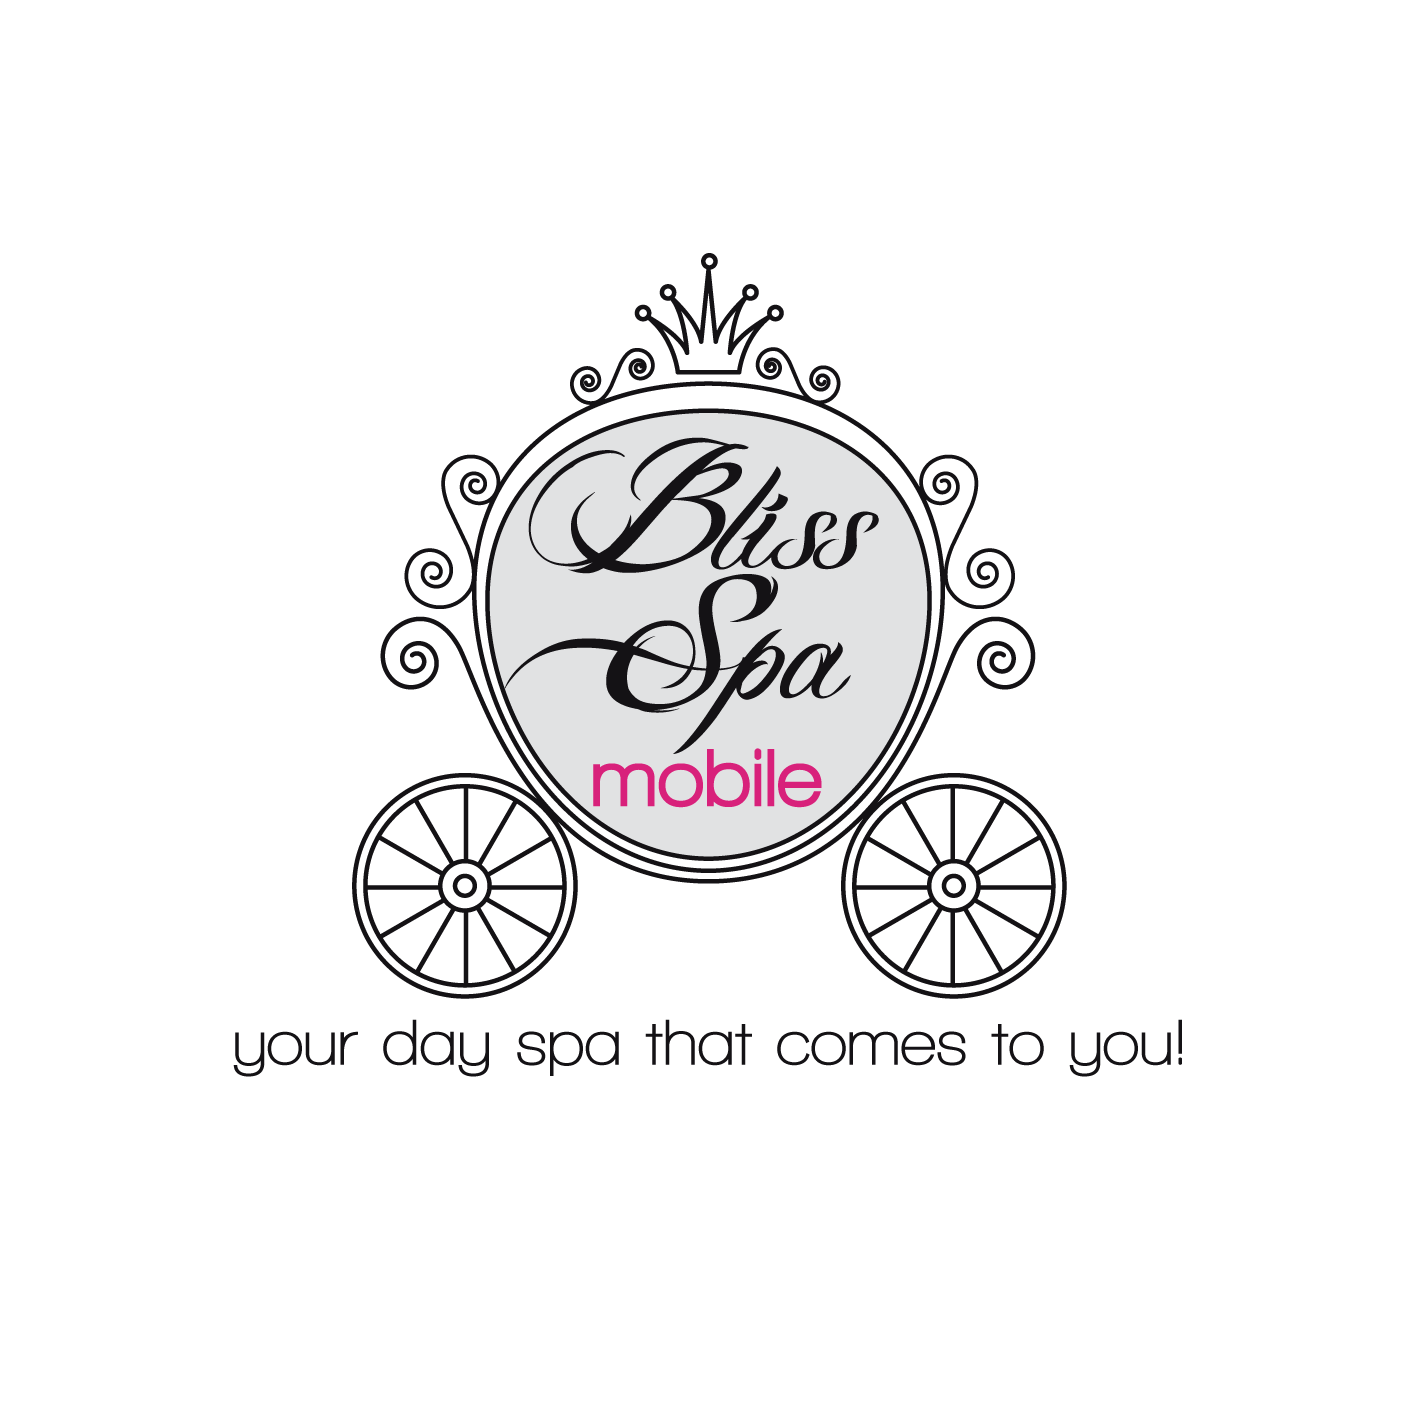 Logo Design by luna - Entry No. 123 in the Logo Design Contest New Logo Design for Bliss Spa Mobile.